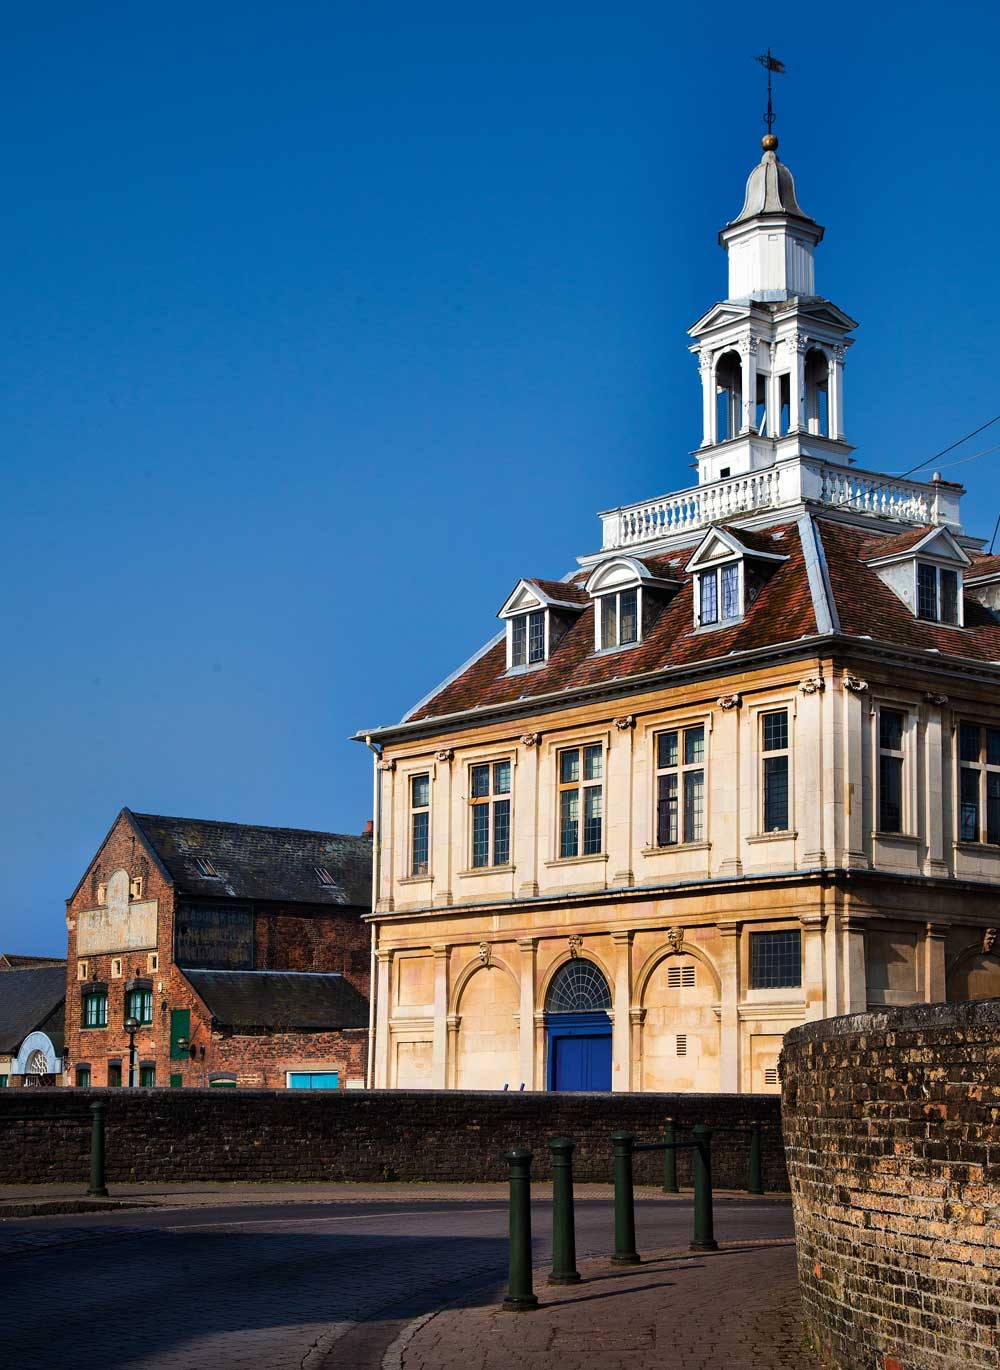 The Custom House in King's Lynn